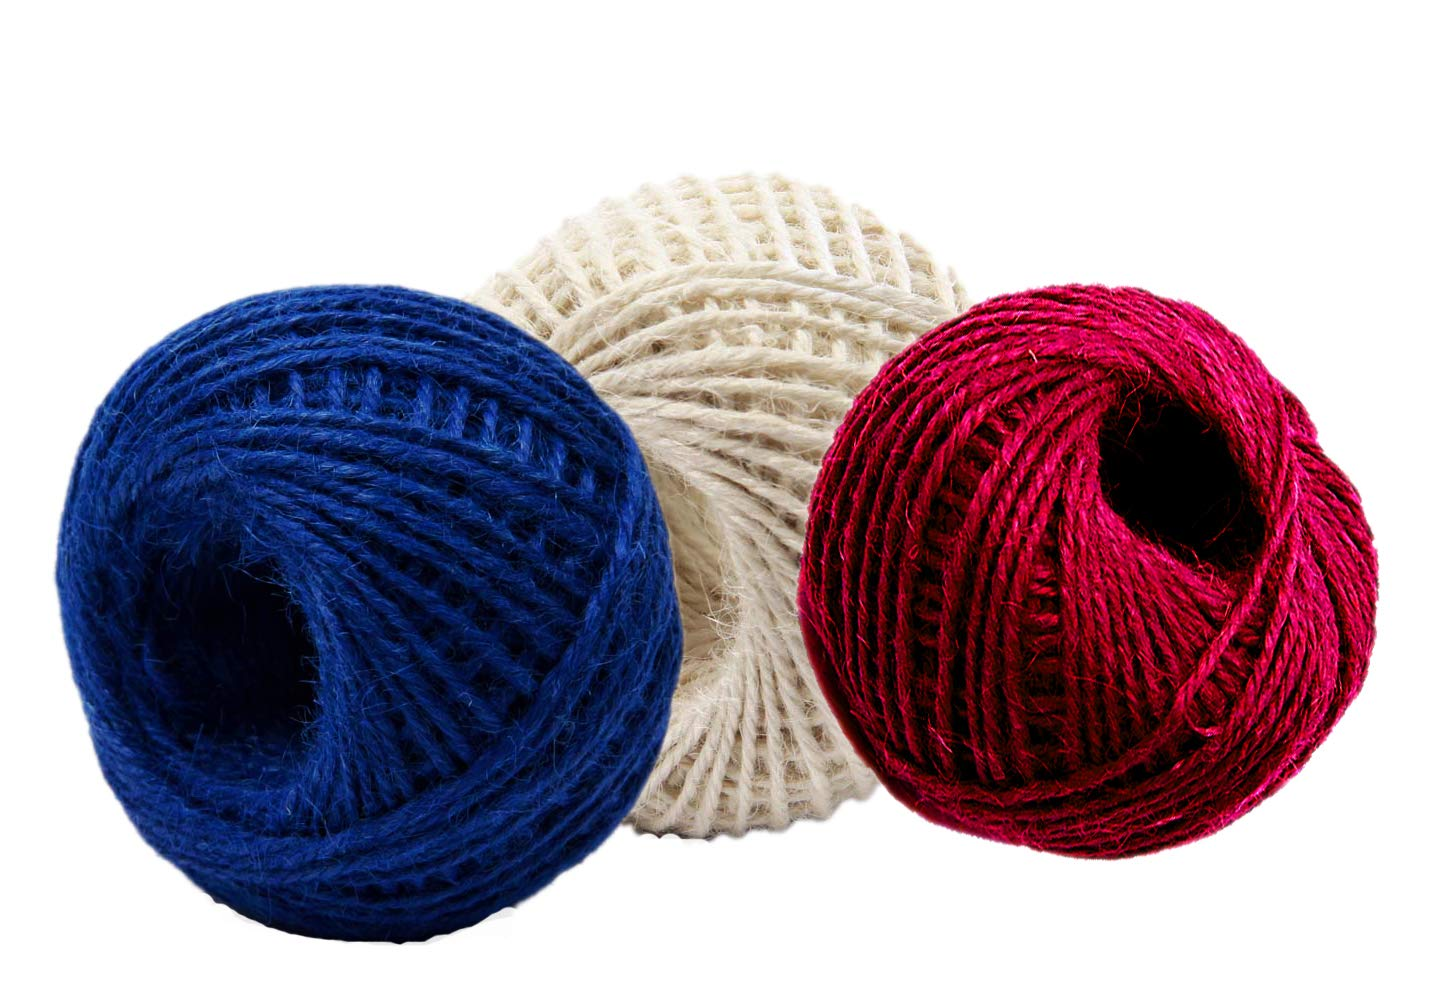 AAYU Brand Premium Burlap Patriotic Colored Jute Twine, 3 Pack | Red+Ivory+Blue | 4ply of 450ft | Heavy Twine